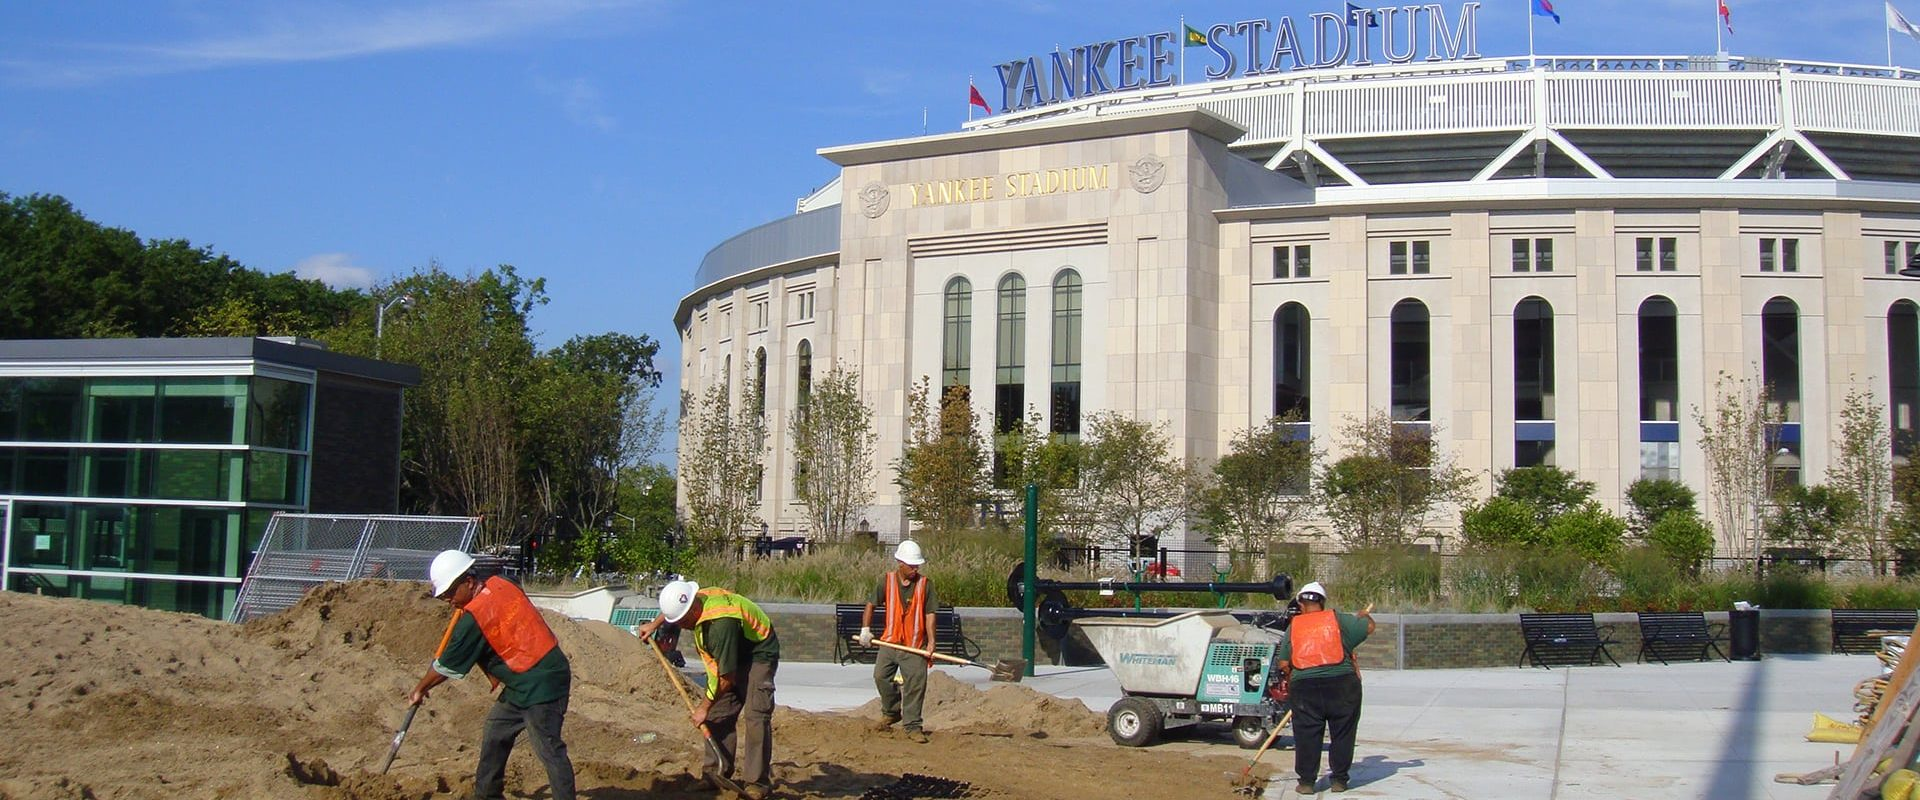 Yankee-Stadium---Sports-&-Leisure